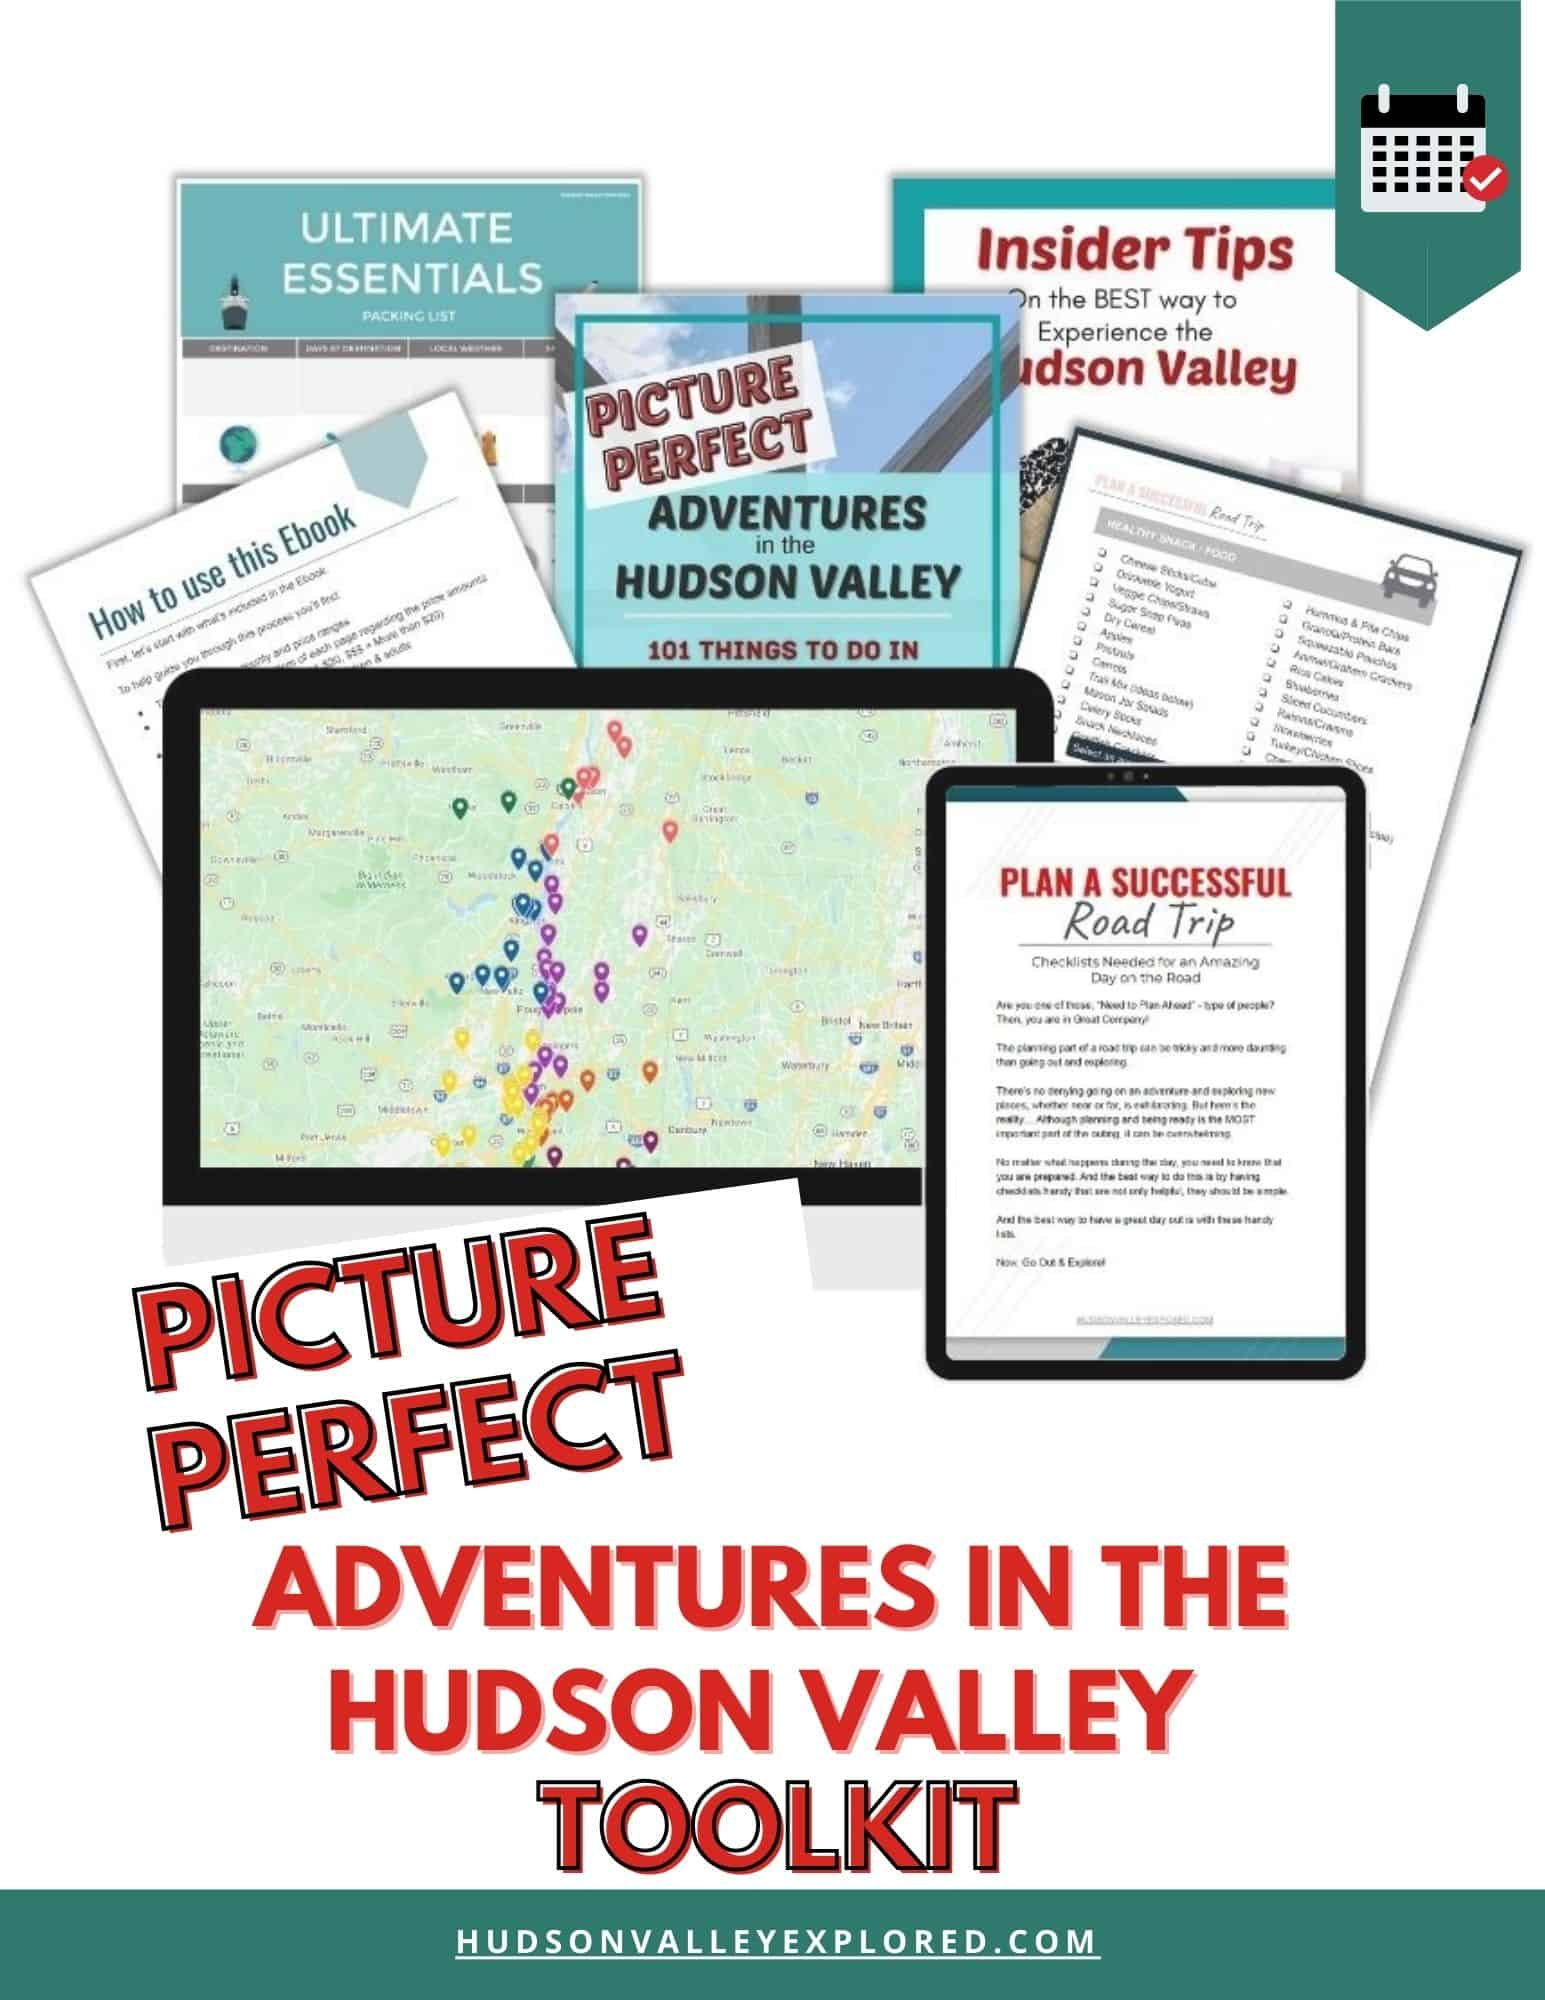 The picture Perfect Adventures in the Hudson Valley Toolkit